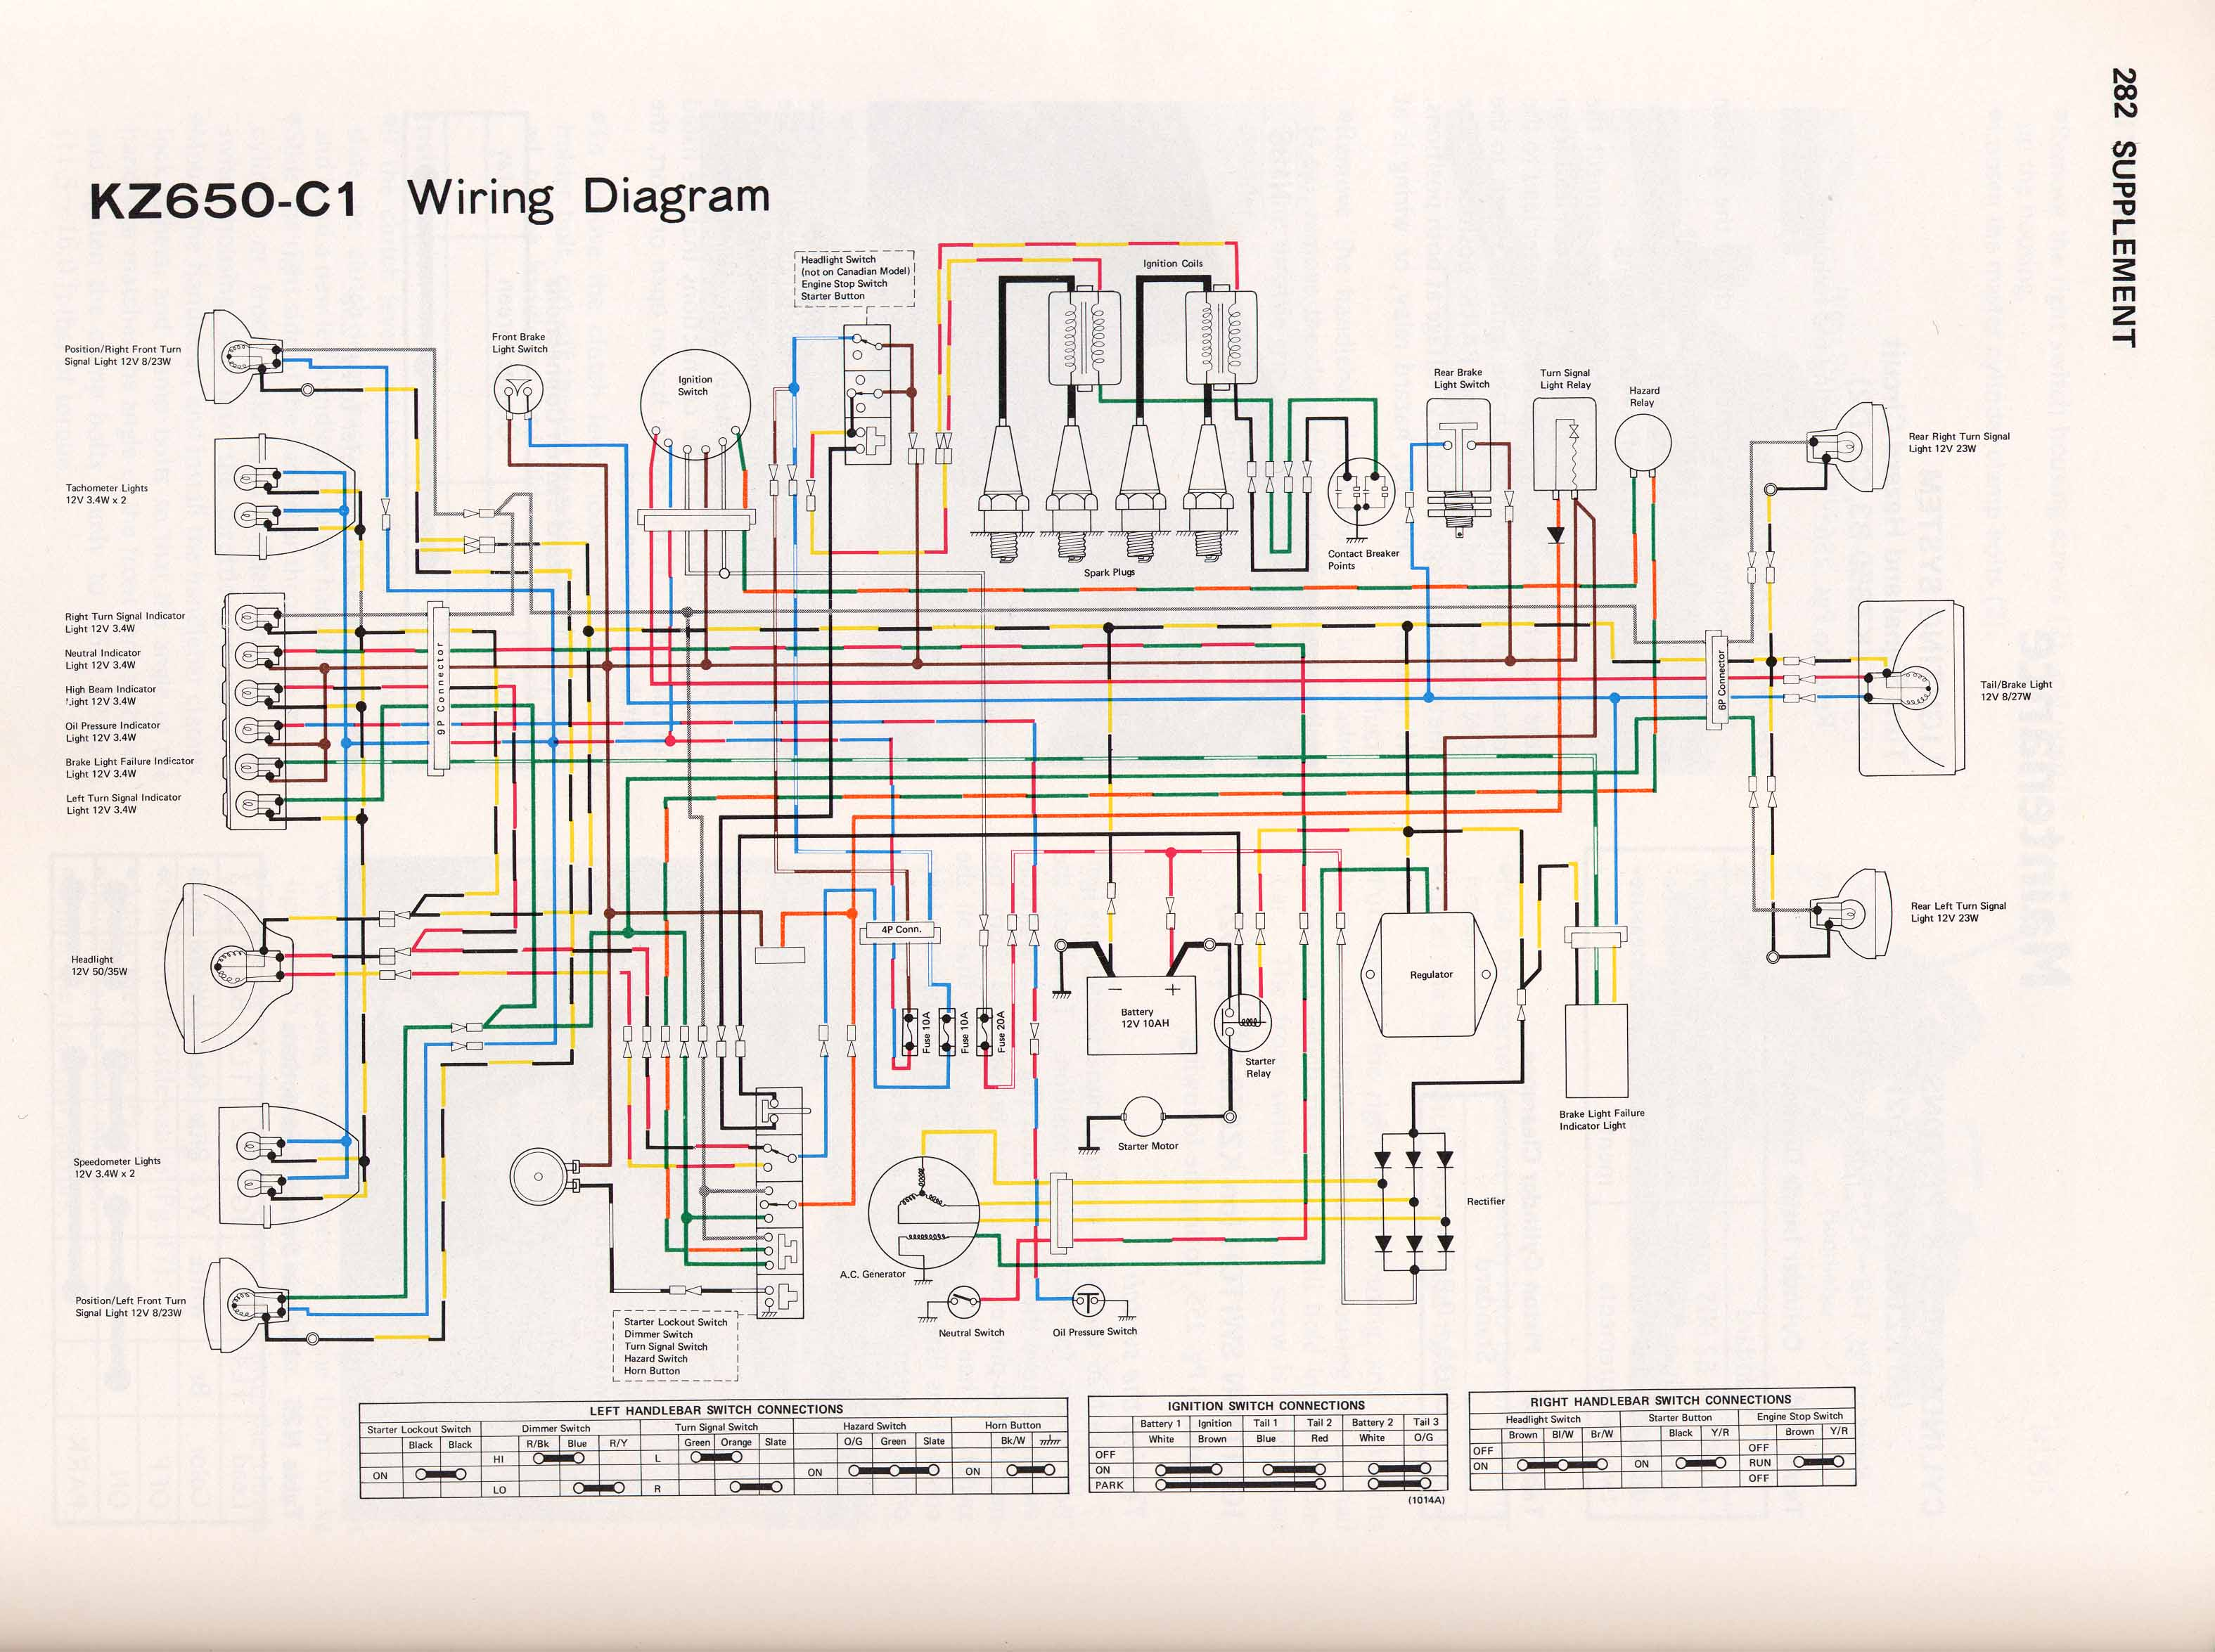 80 kz650 wiring diagram 1982 kz650 wiring diagram